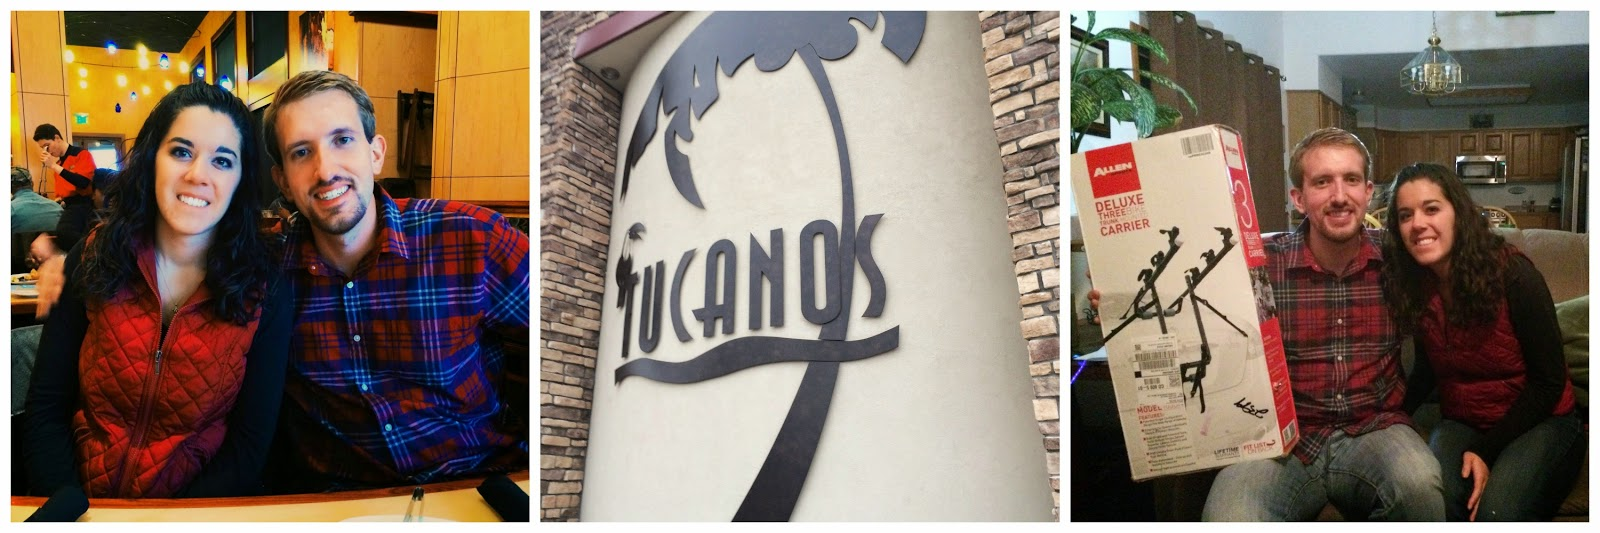 tucanos brazilian grill allen bike rack dinner picture